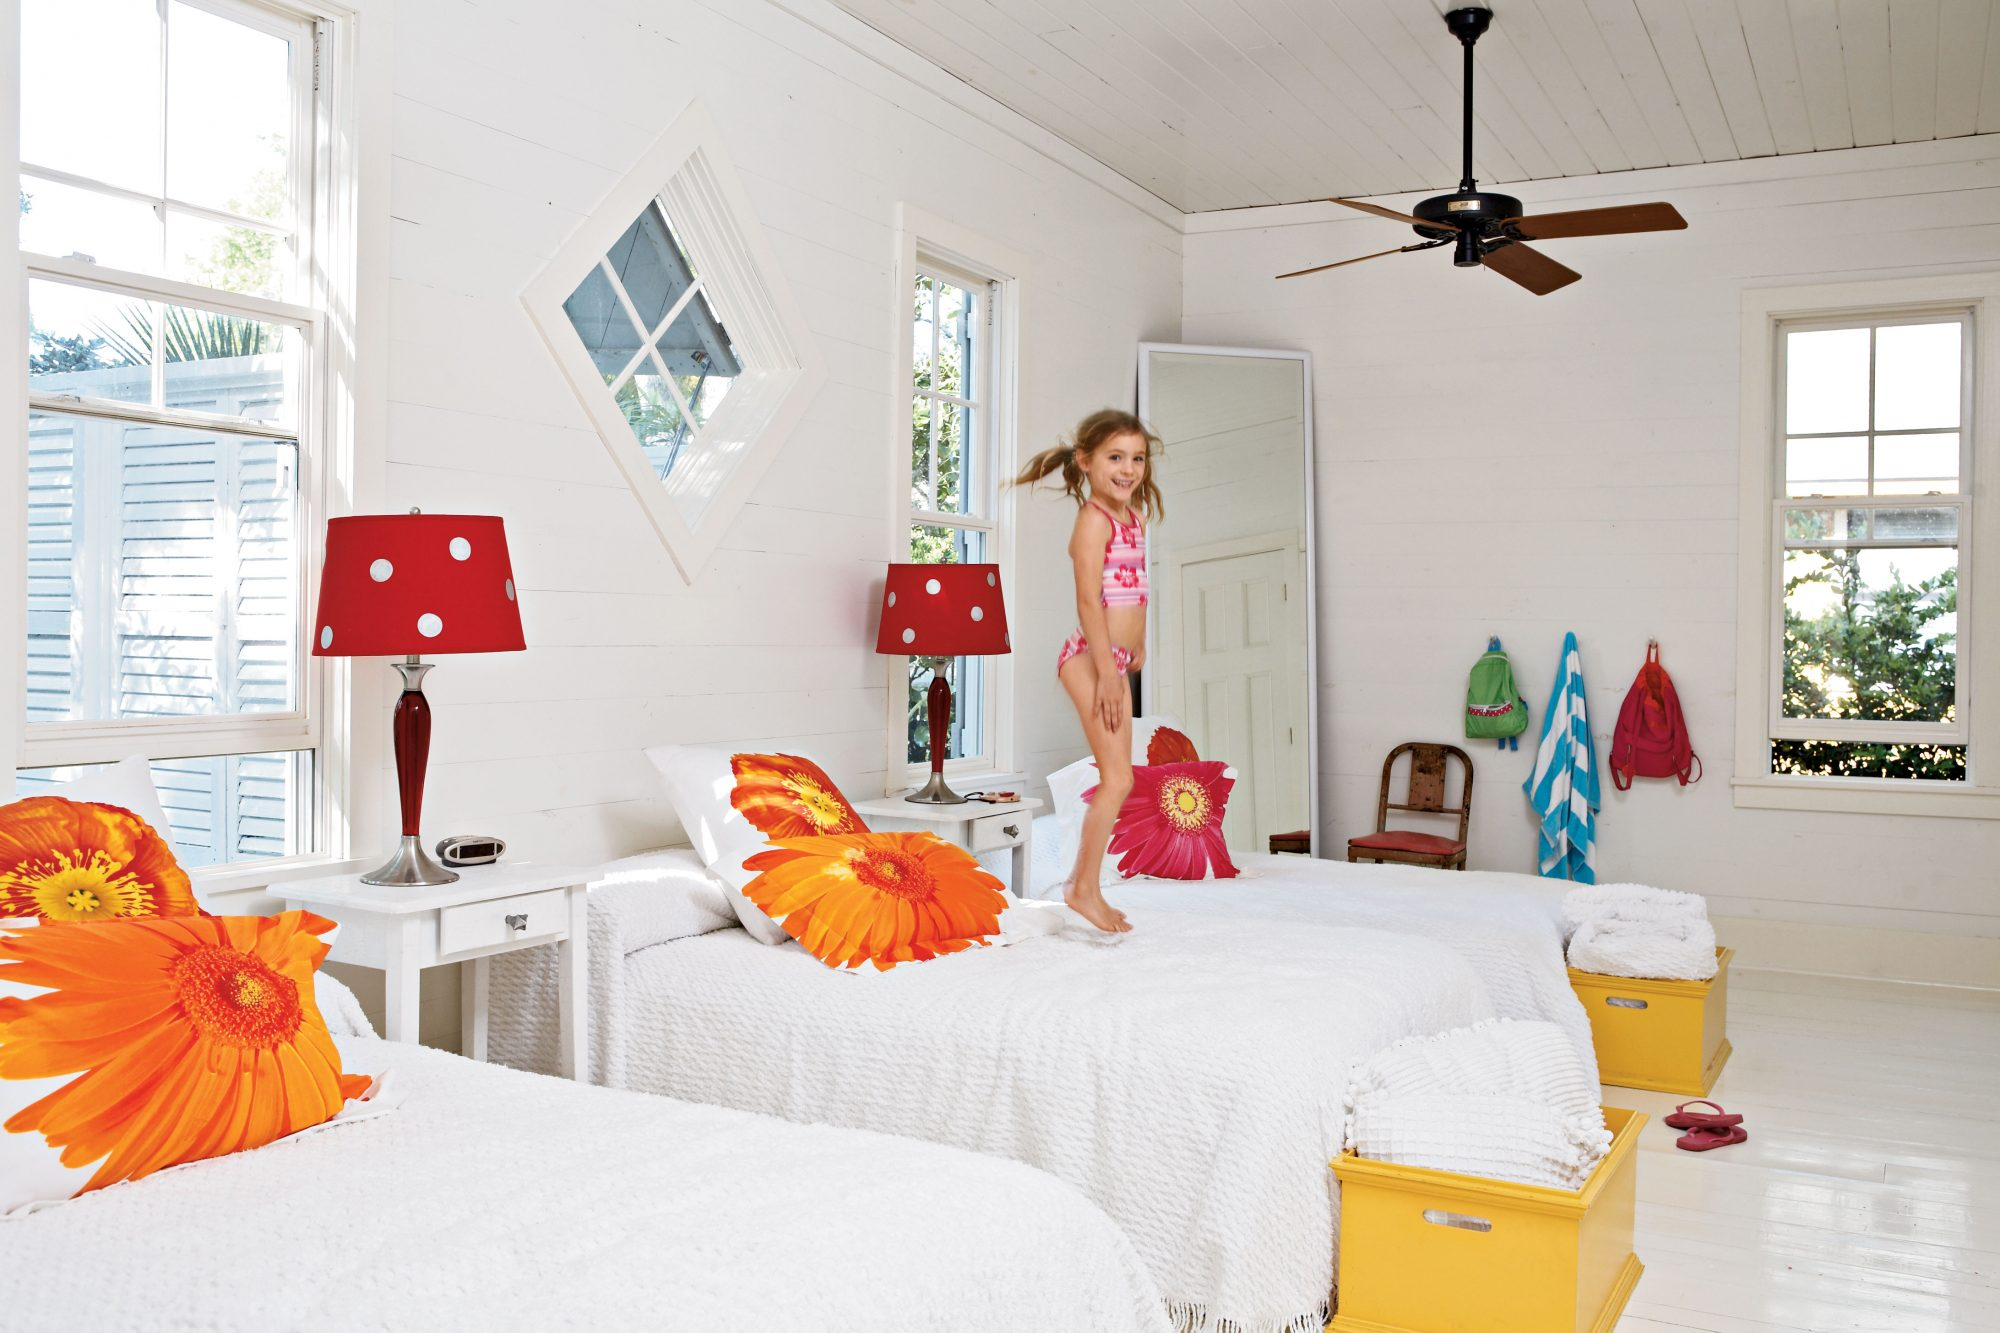 bright colored cubes at the end of the twin beds store kids' sleepover items